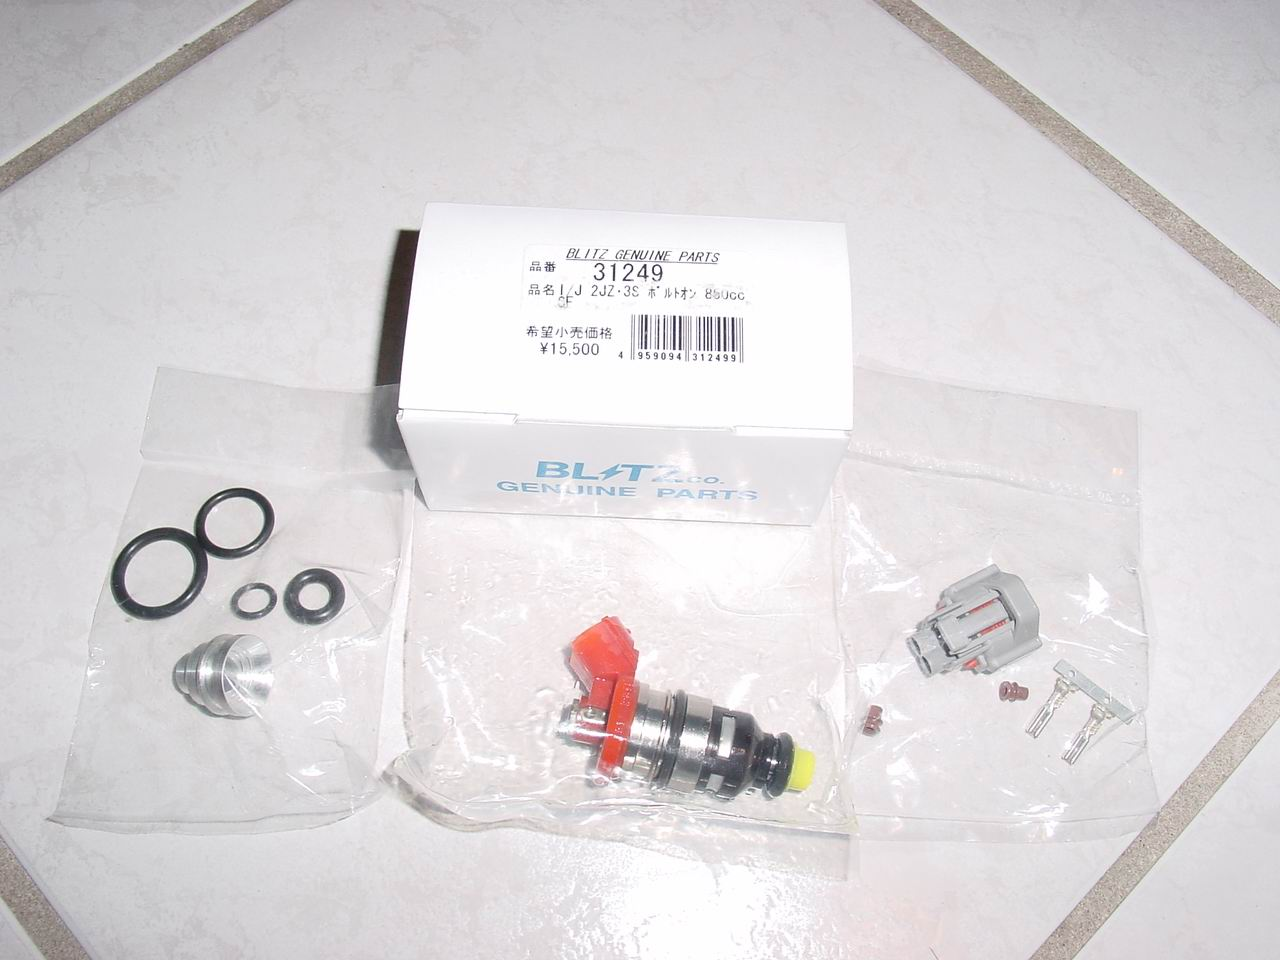 hight resolution of this what you get in the box 1 injector with 2 seals on it 4 seals in a bag and an aluminum adaptor that goes inside the stock rail harness kit